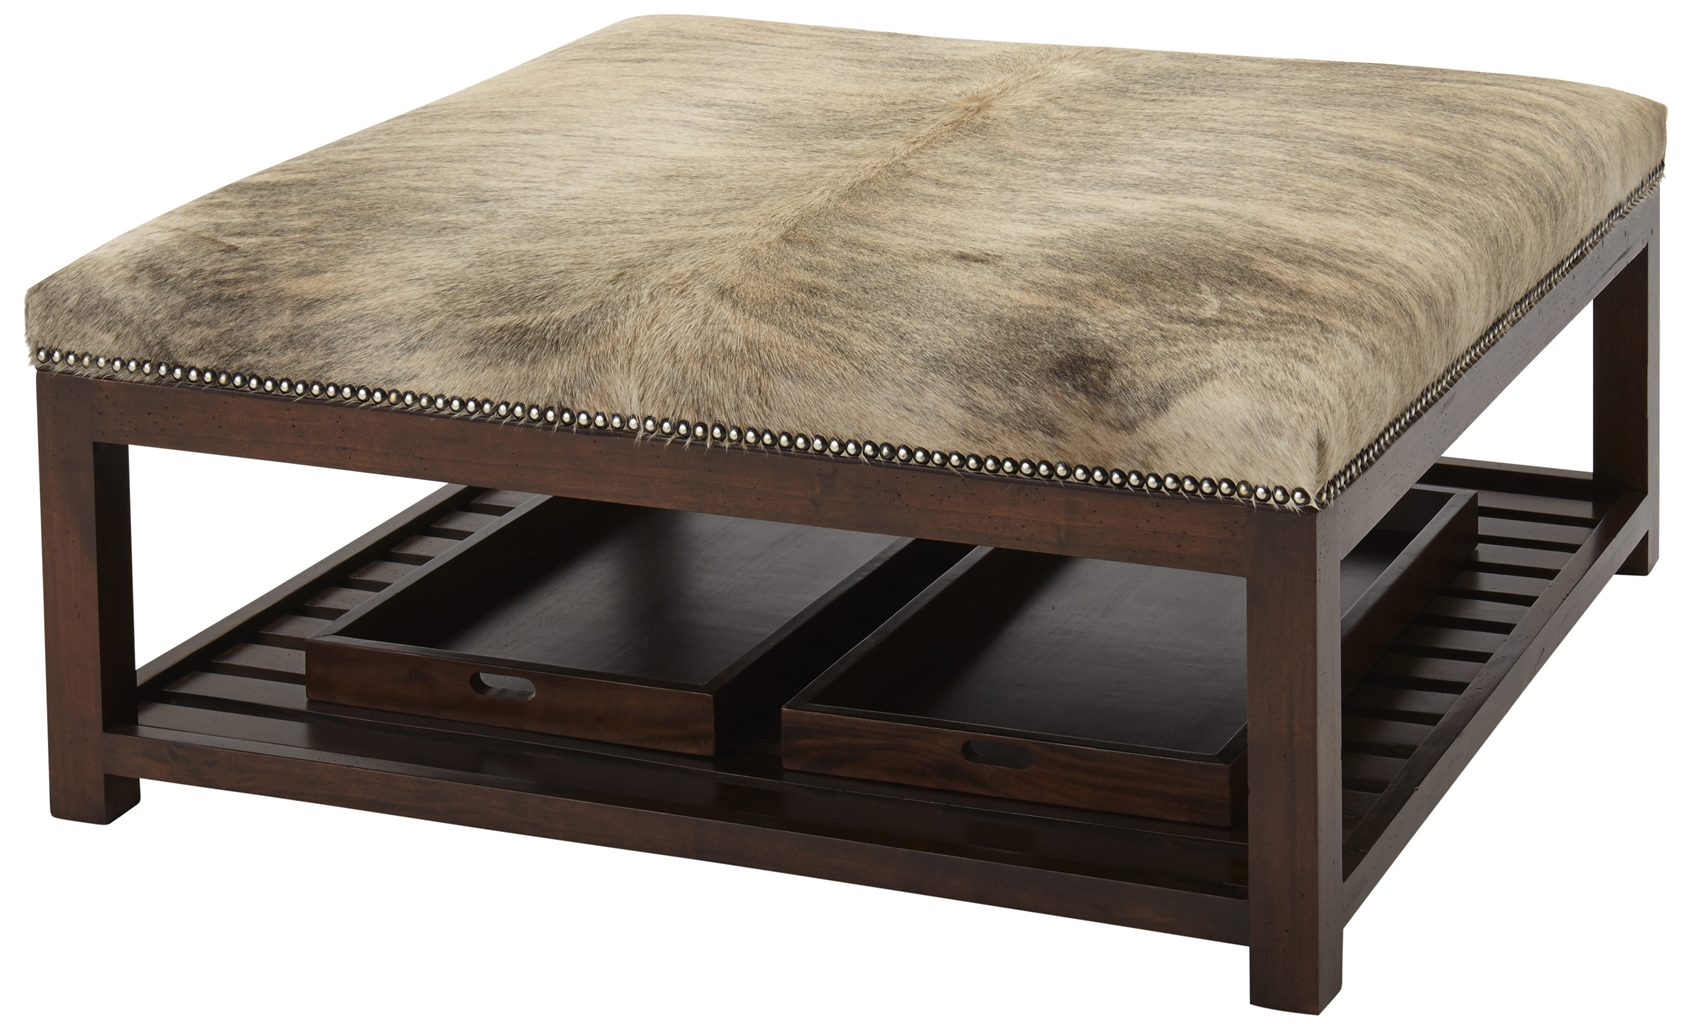 Luxury Leather Upholstered Furniture Ottoman With Trays